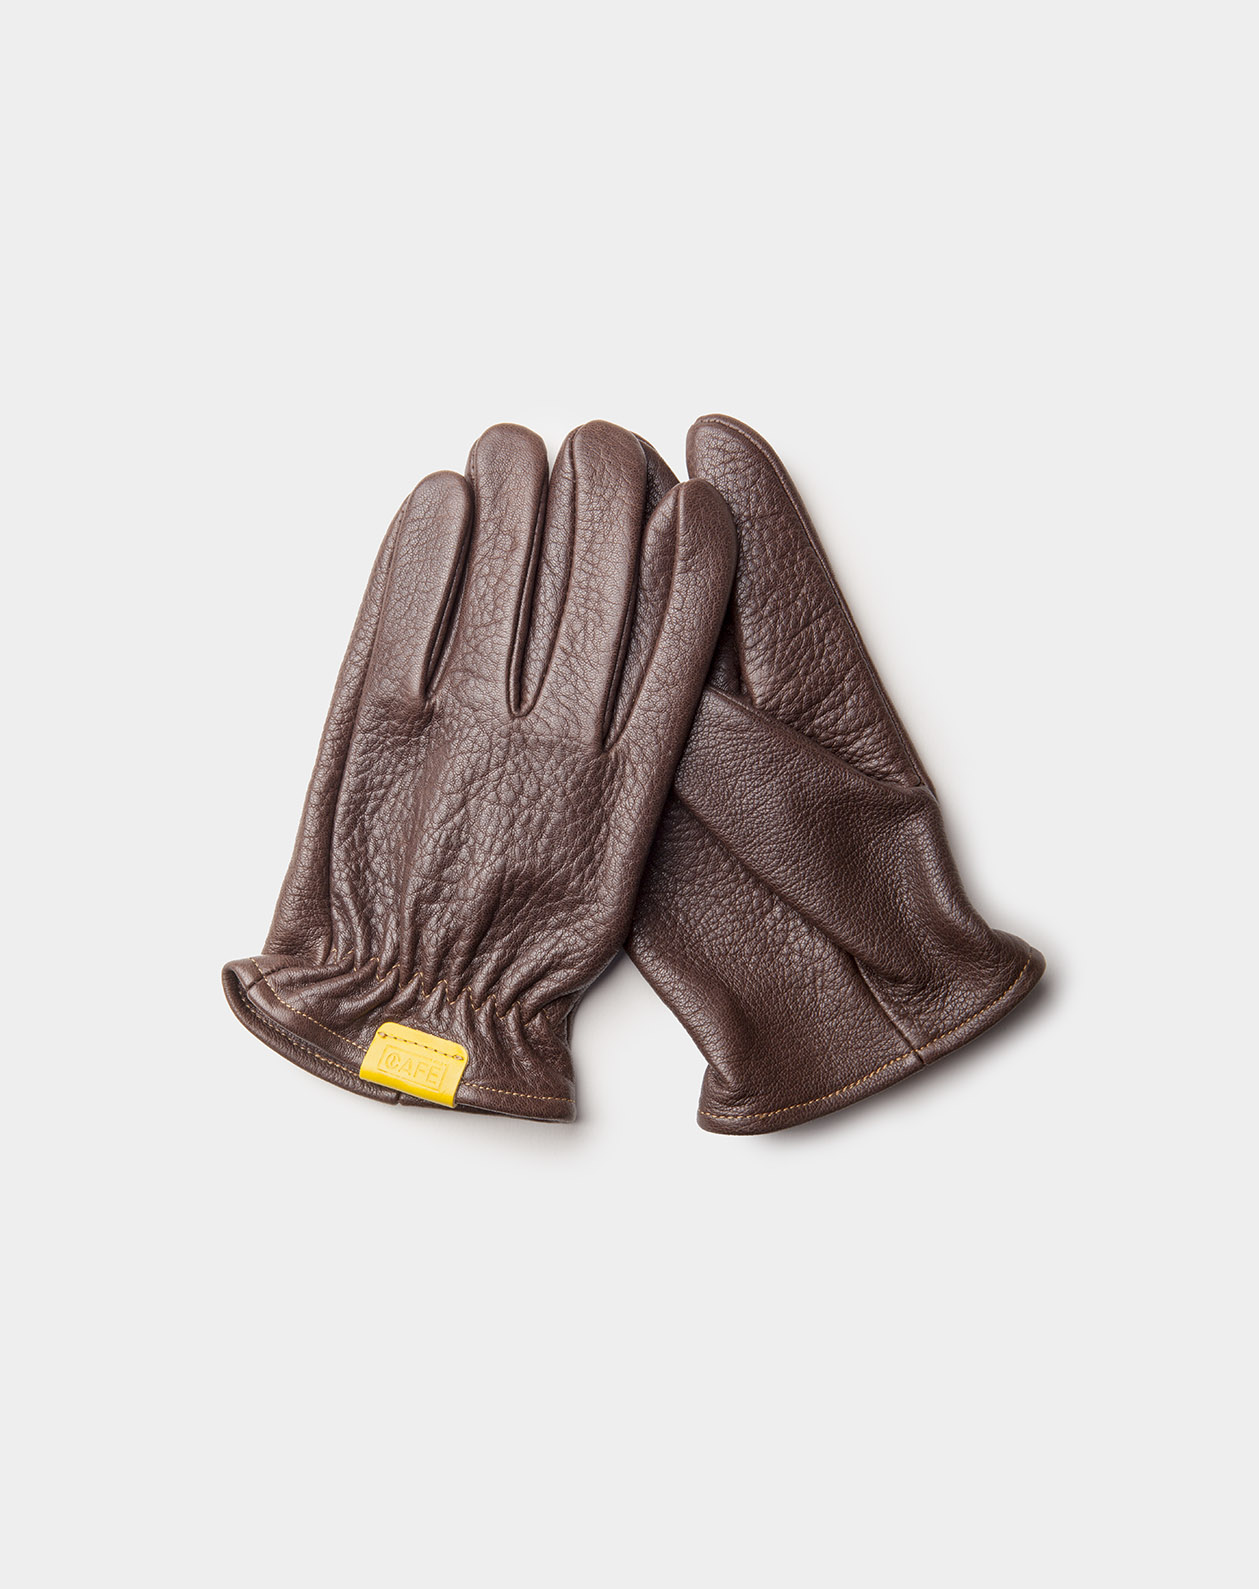 driving gloves brown handcrafted in Spain